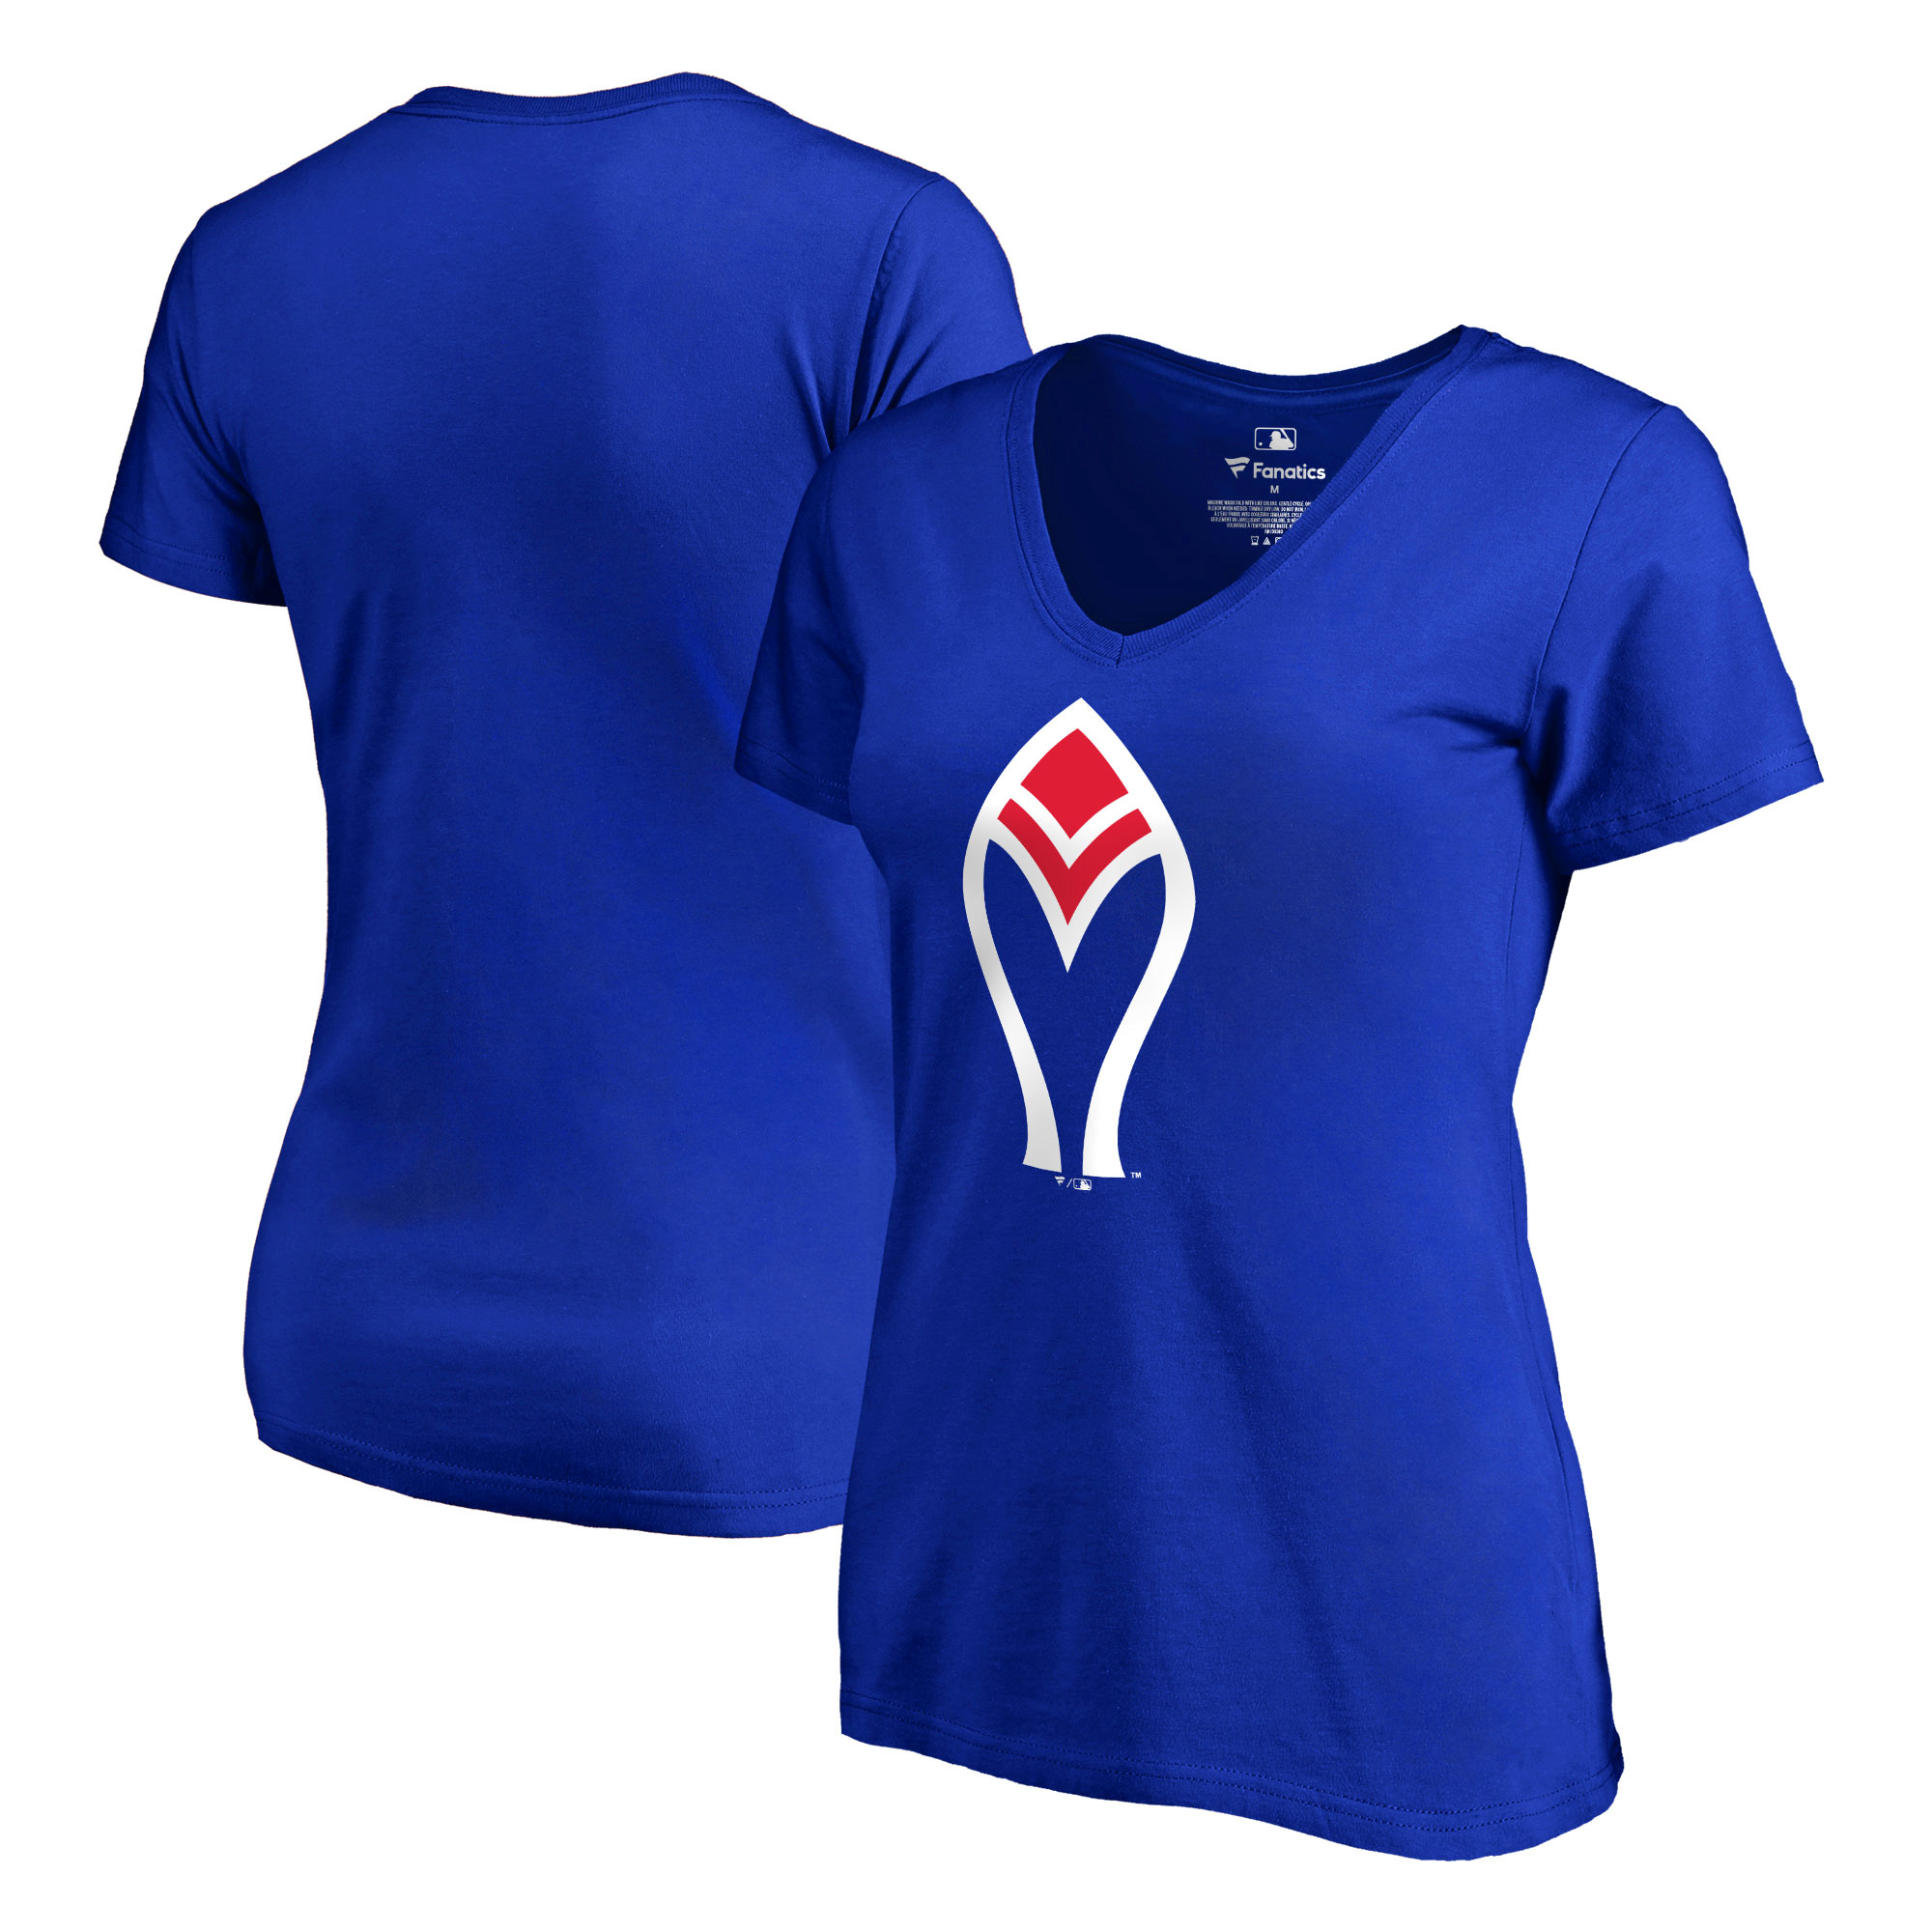 Atlanta Braves Fanatics Branded Women's Plus Size Cooperstown Collection Forbes V-Neck T-Shirt - Royal